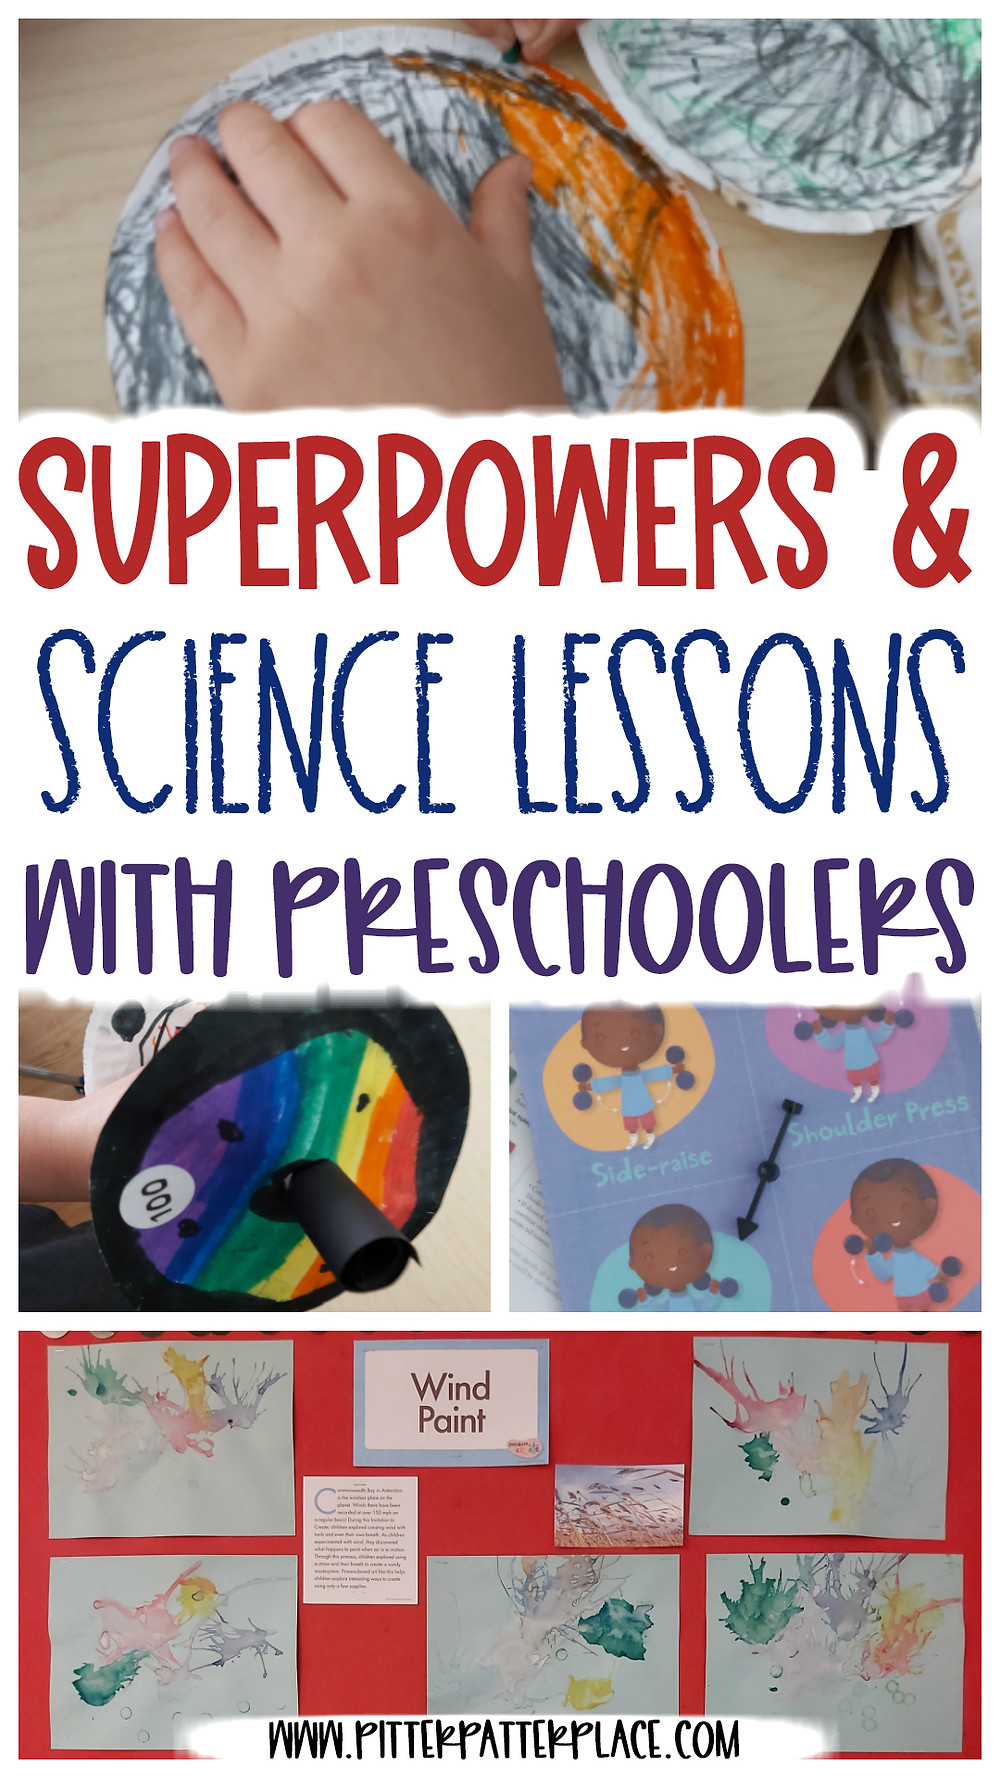 collage of preschool superhero crafts with text: Superpowers & Science Lessons with Preschoolers